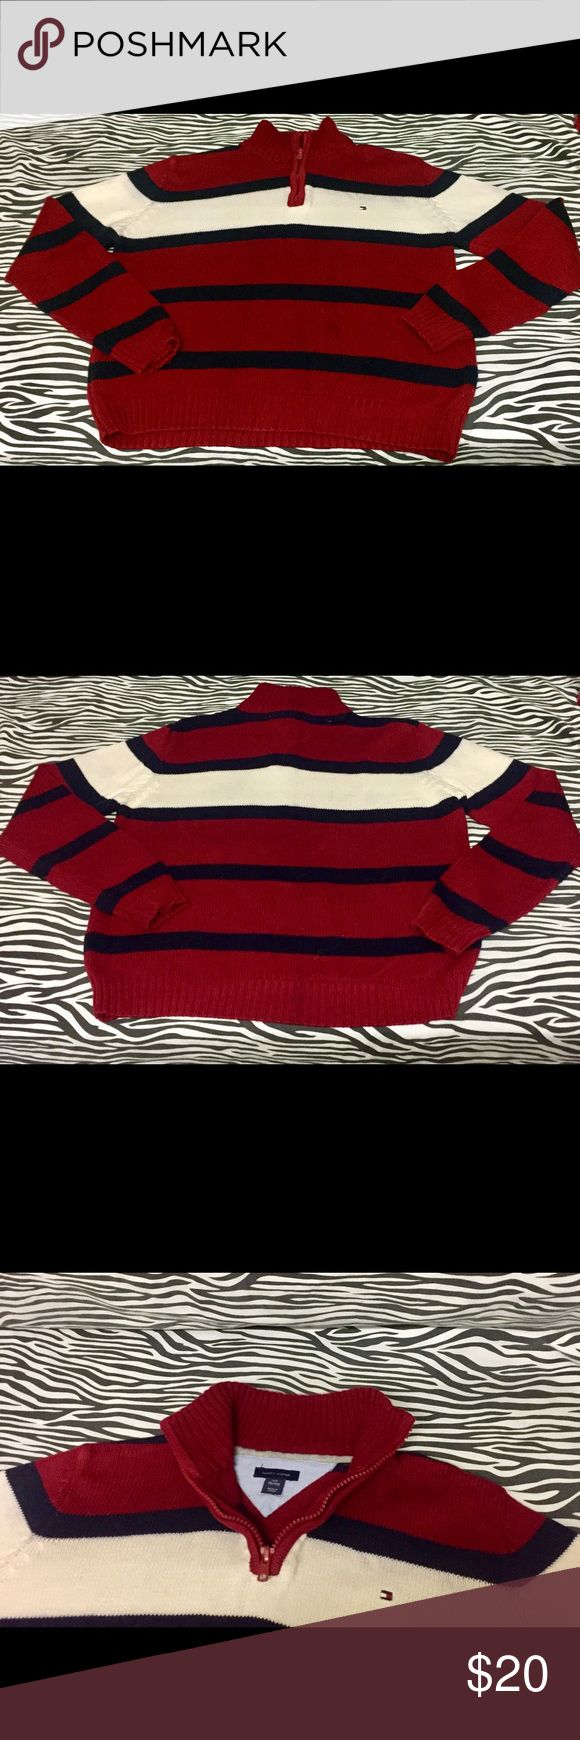 Boys Tommy Hilfiger 3/4 Zipper Sweater. 100% Cotton Red/Navy Blue/ White with a 3/4 zipper. Size S/P (8-10). Small spot on front. 20in Long, 18in Chest and 20in Sleeves from wrist to Shoulder. Tommy Hilfiger Sweaters